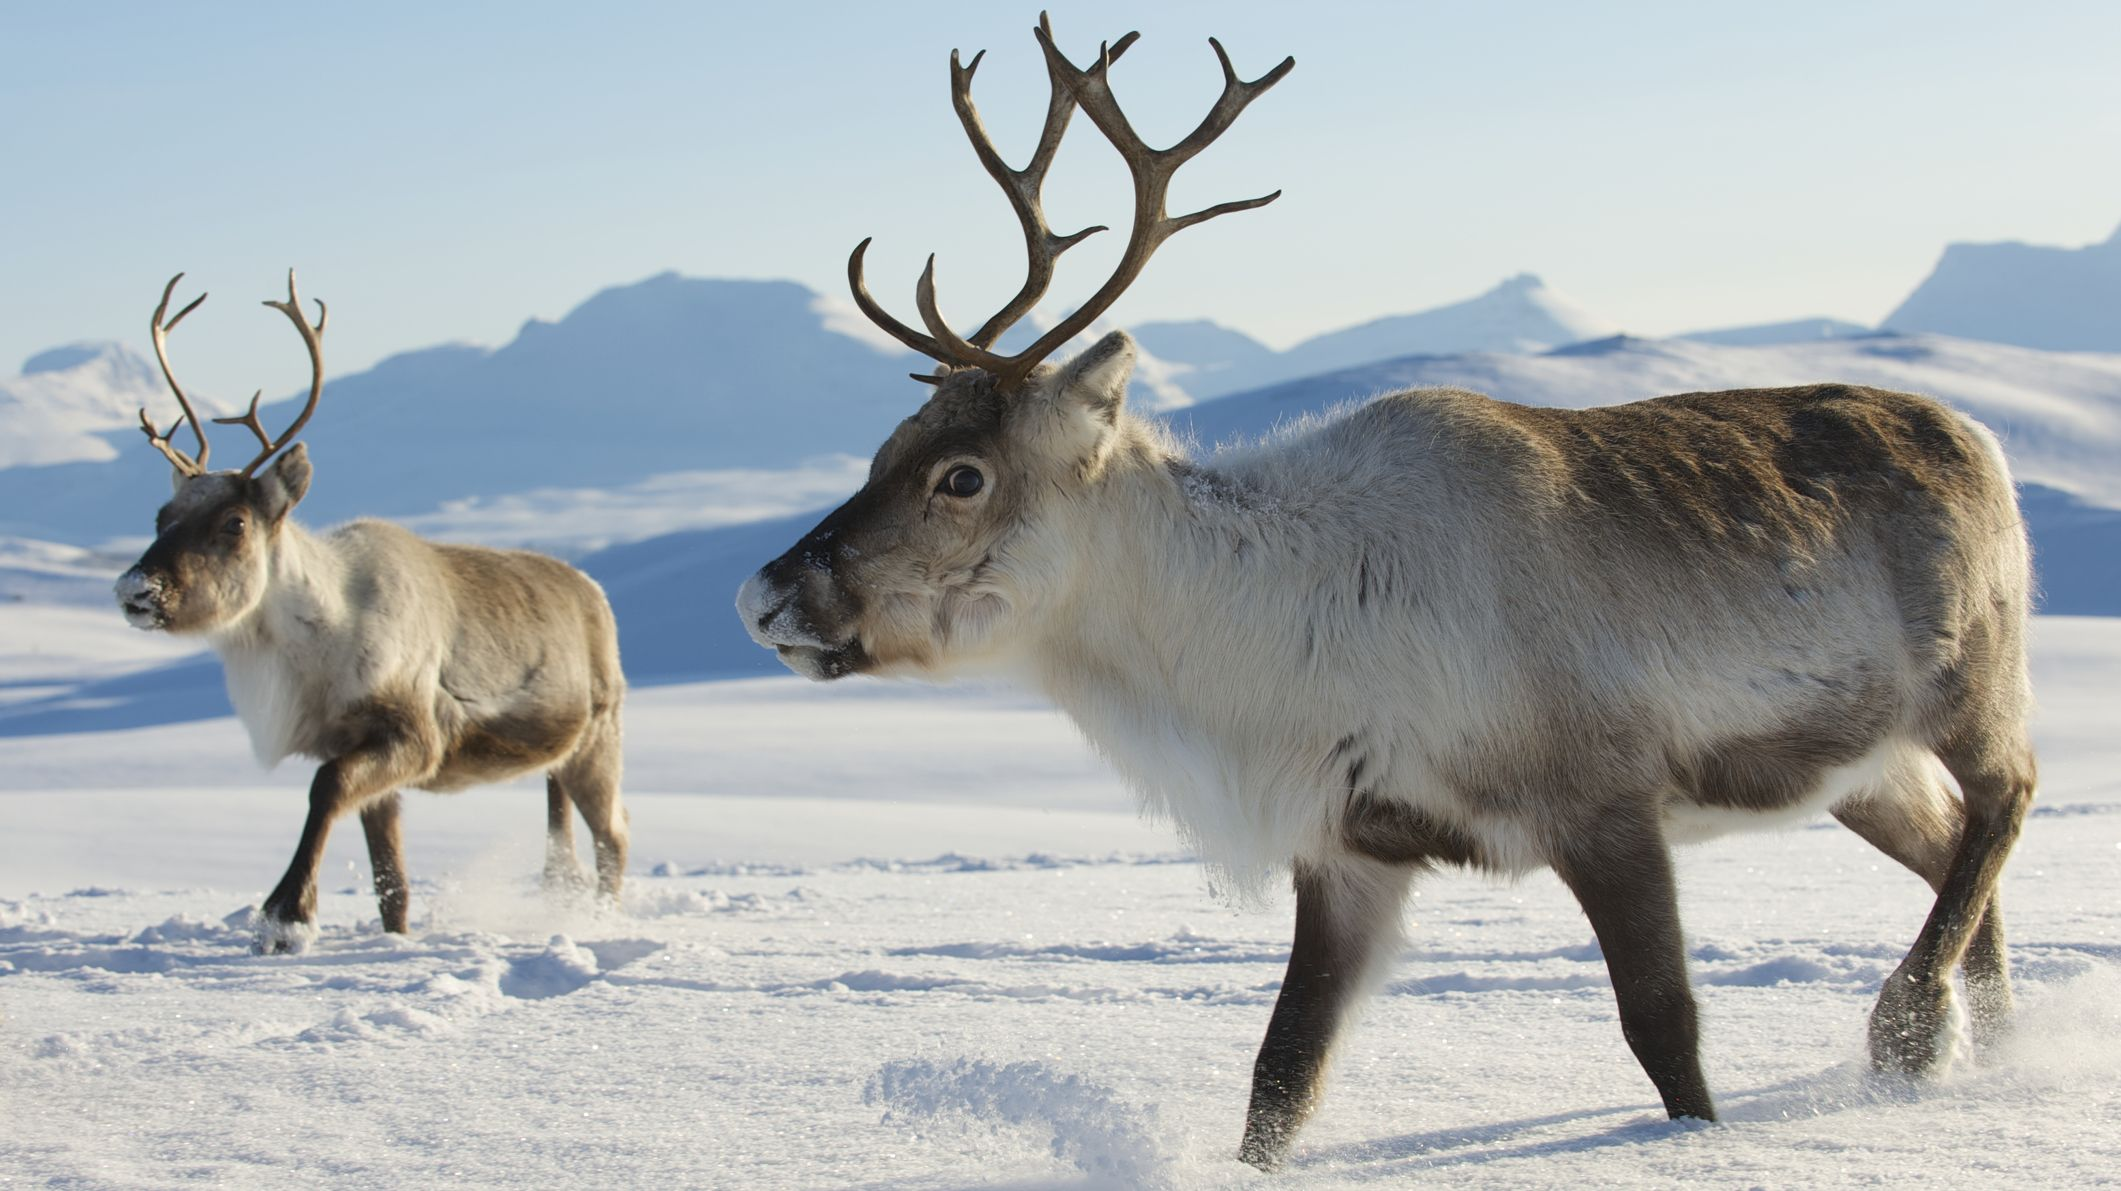 753c1ab7b 11 Reindeer Facts to Share This Winter